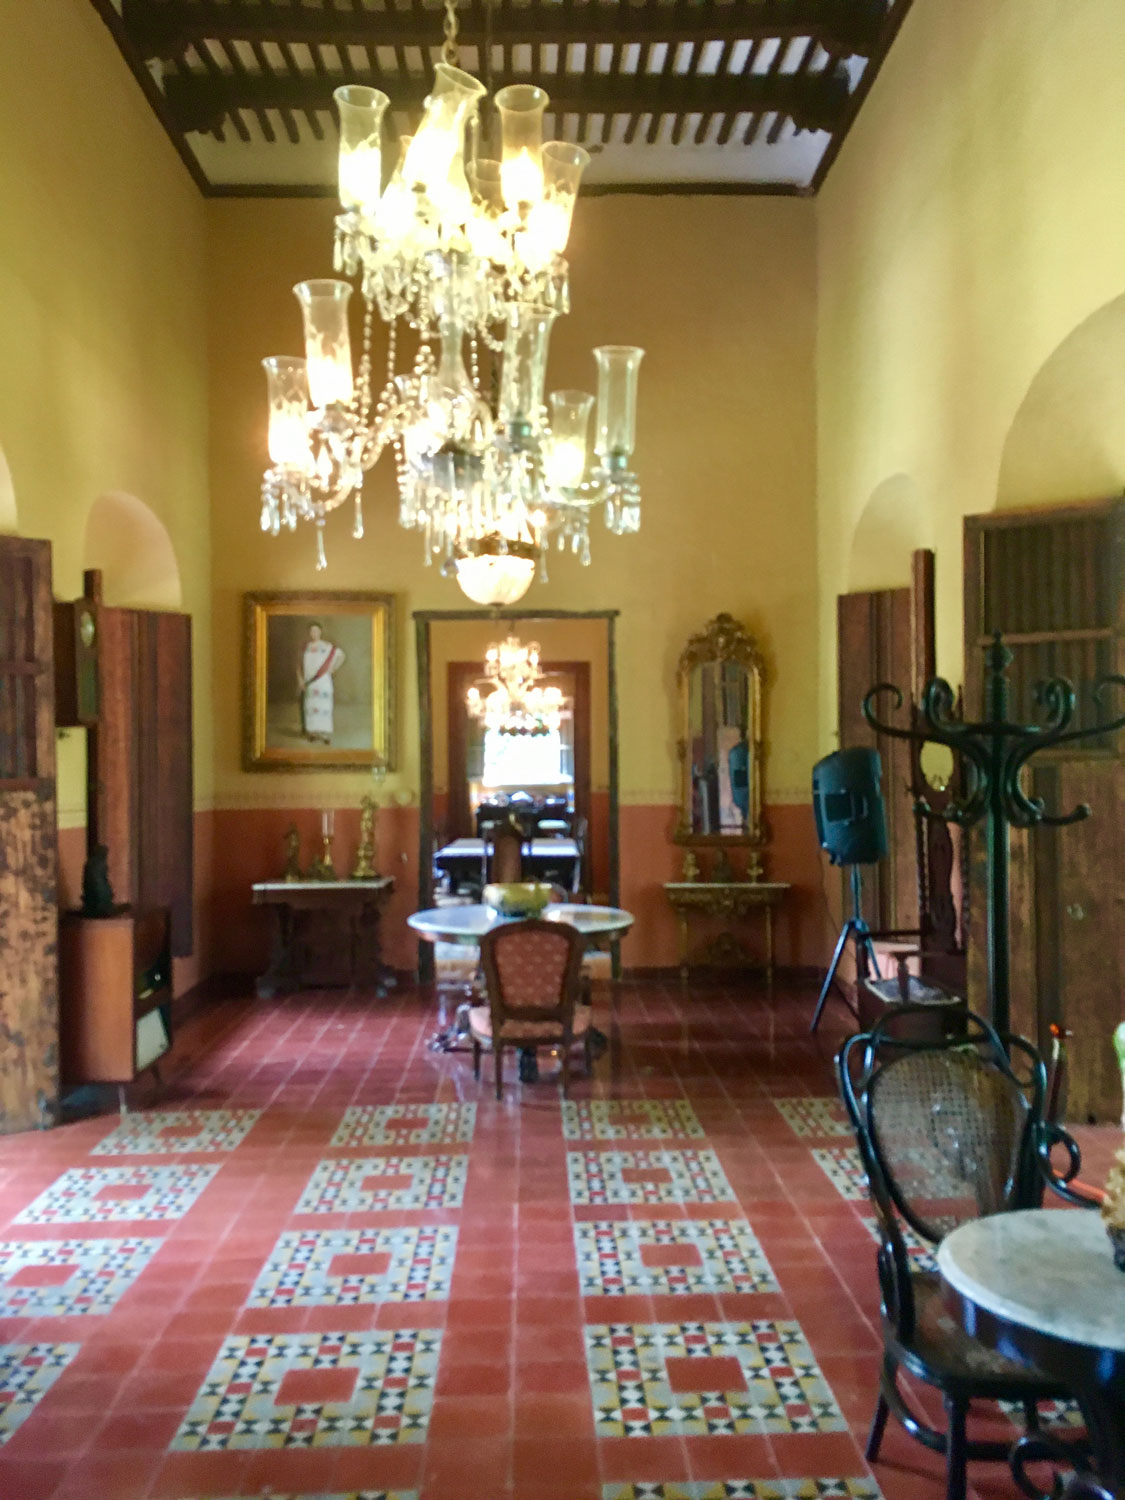 Rooms of the main house.